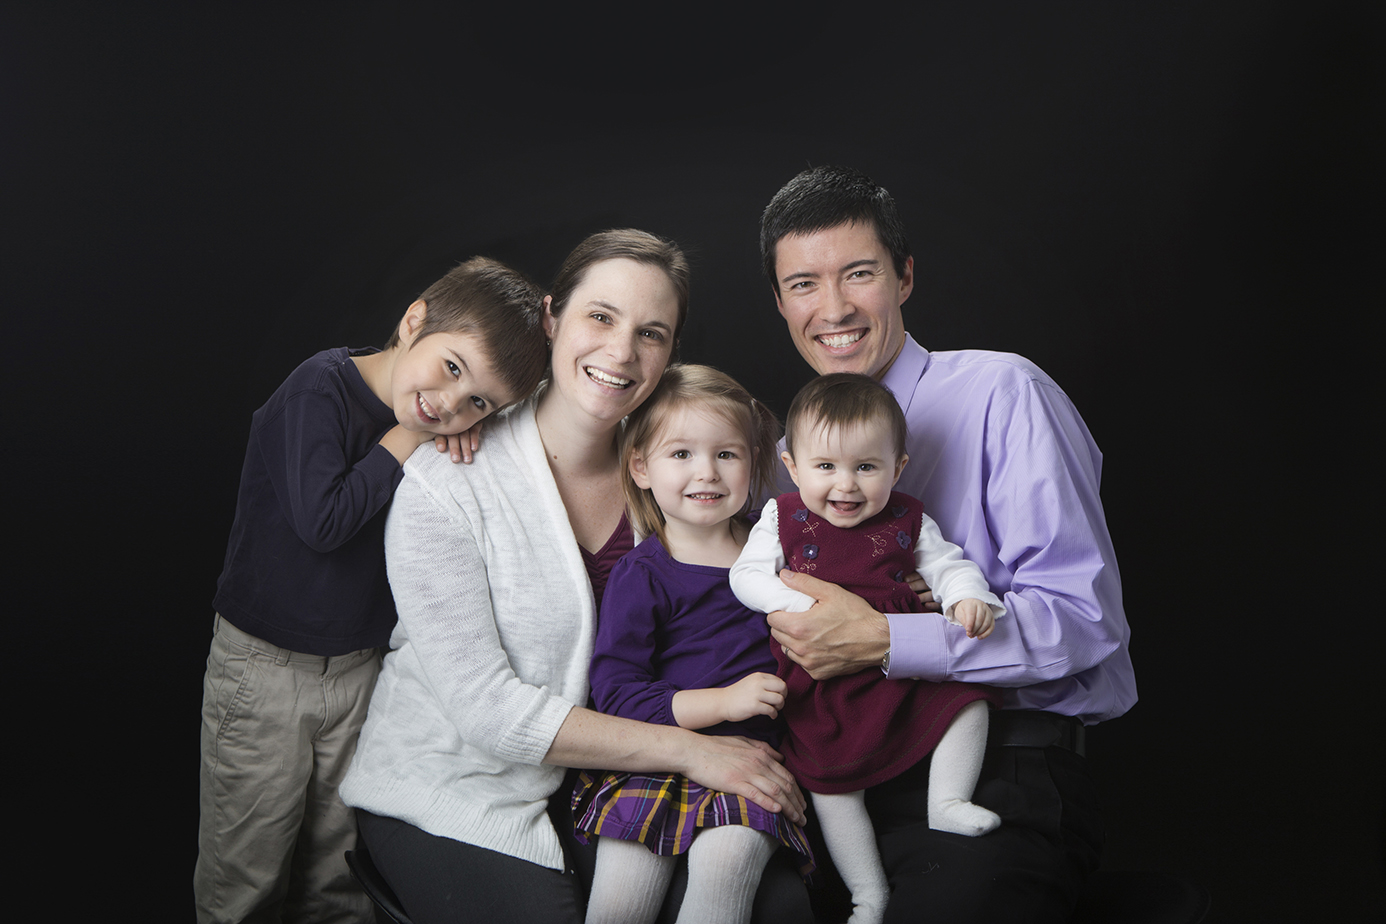 Cambridge Ontario Portrait Studio